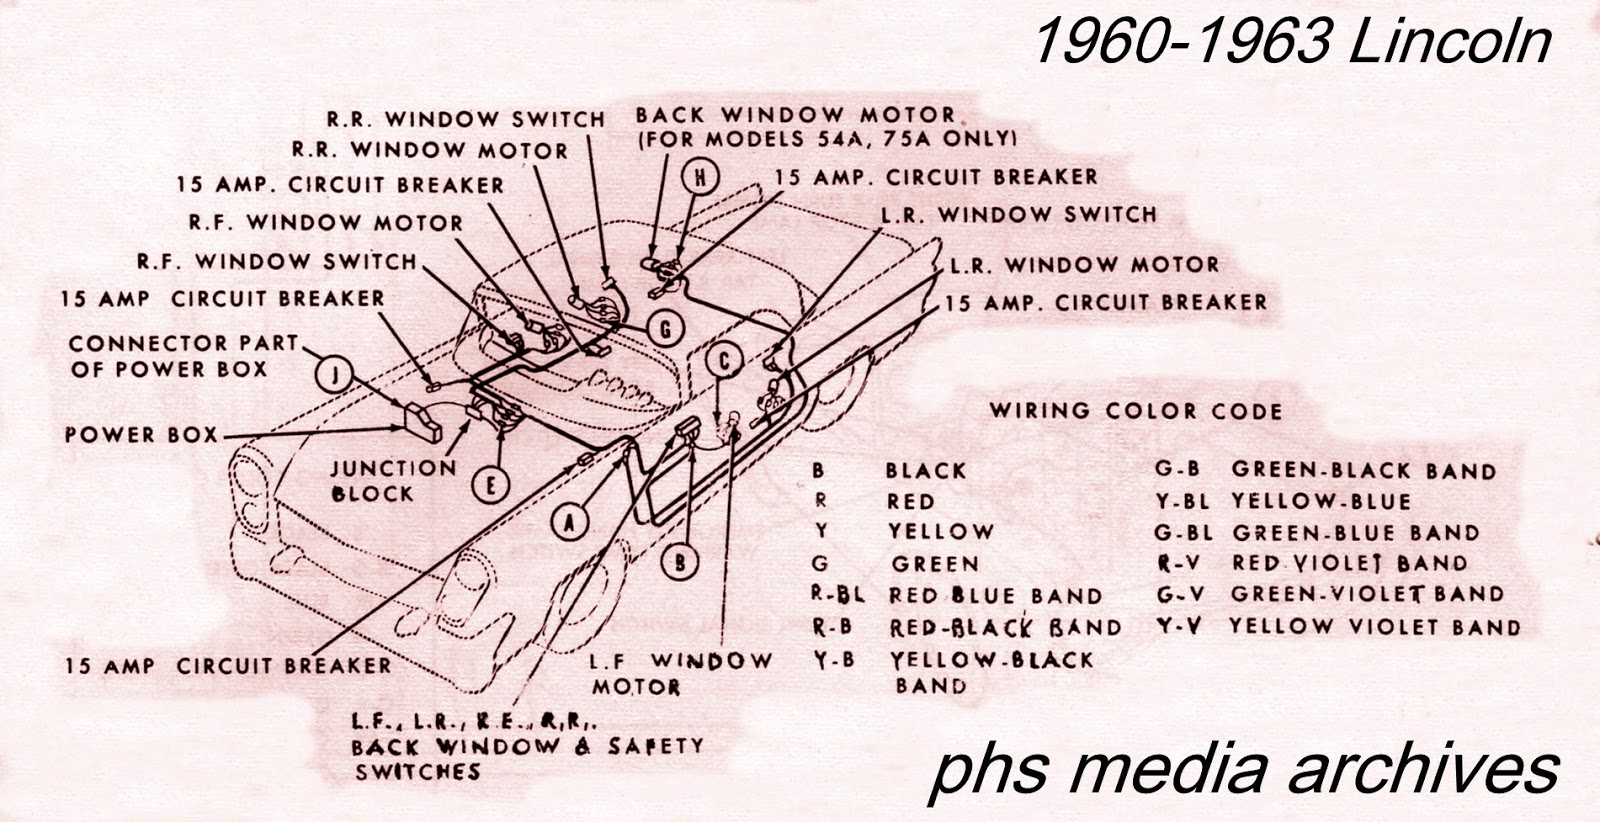 hight resolution of tech series 1960 1964 lincoln wiring diagrams phscollectorcarworld rh phscollectorcarworld blogspot com 1998 lincoln navigator wiring diagram 2000 lincoln